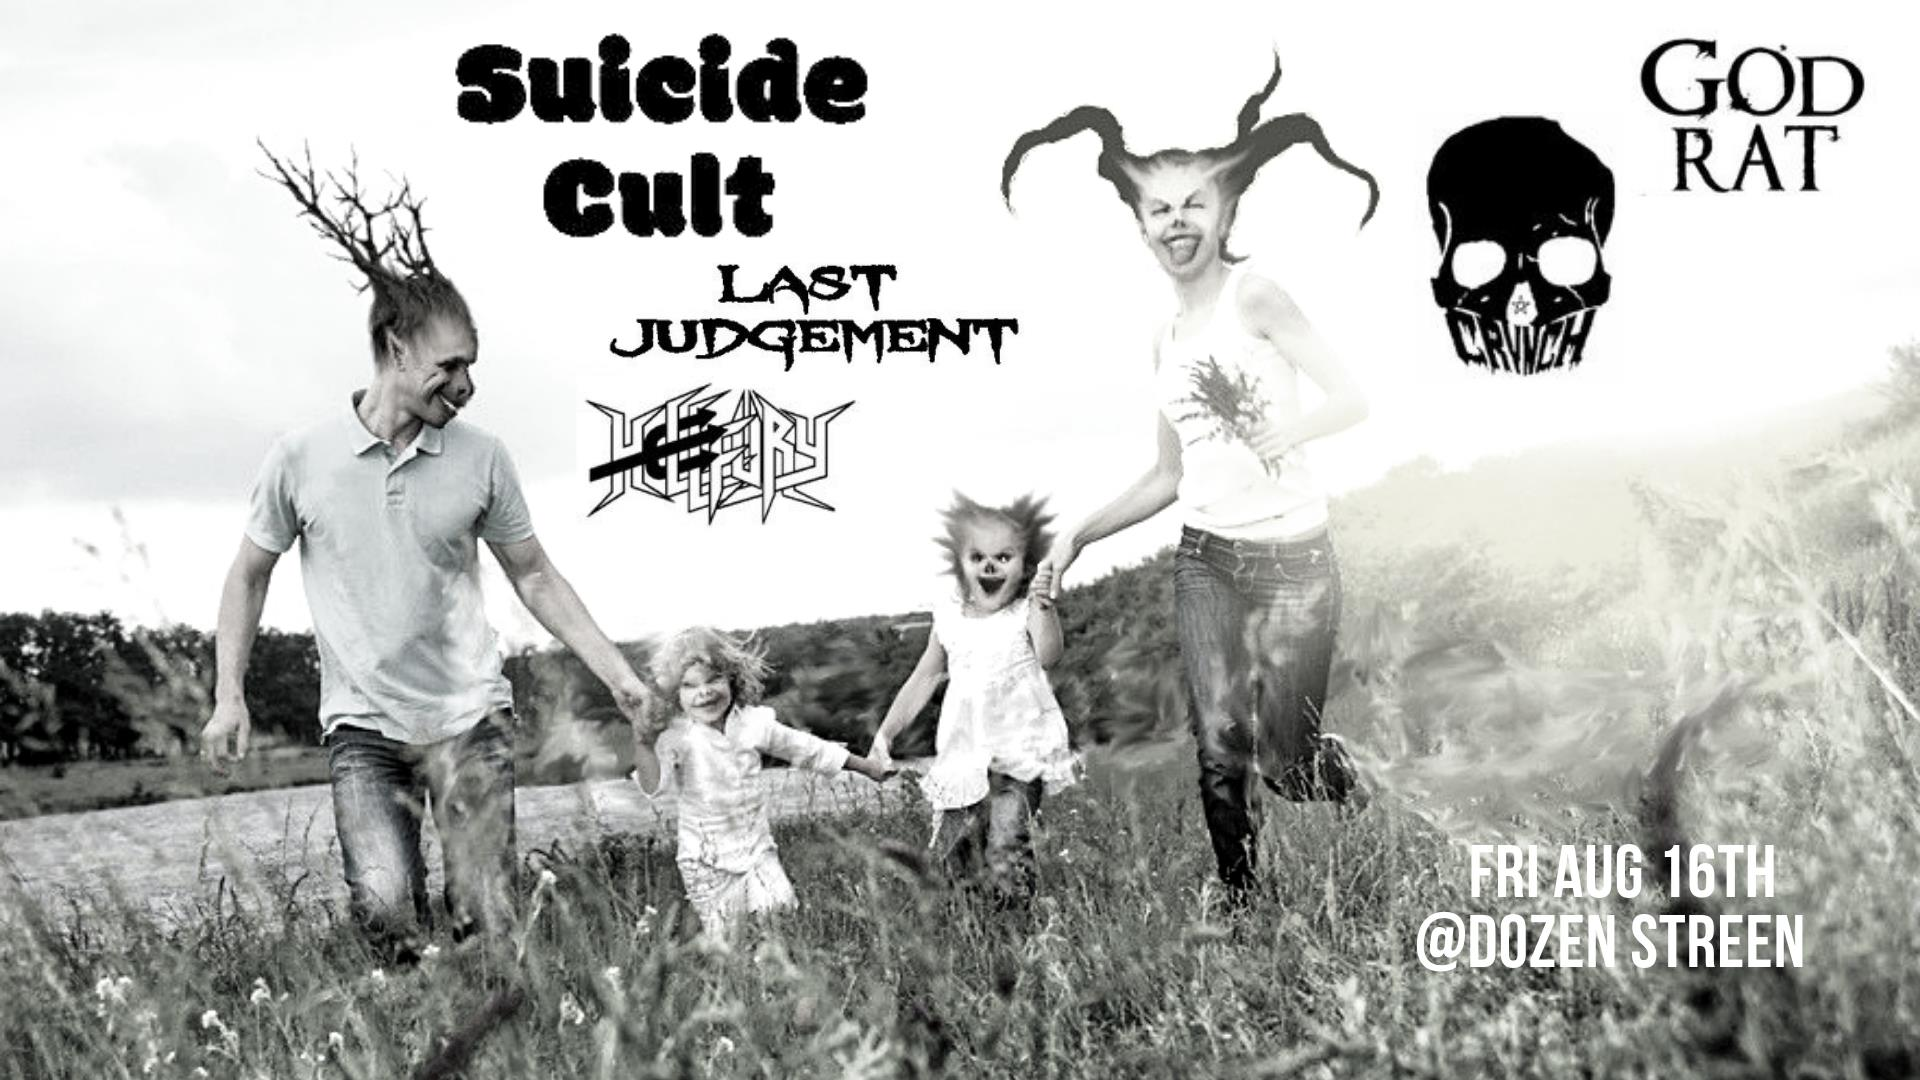 Suicide Cult/ Last Judgement/ Hellfury/ God Rat/ Crvnch LIVE